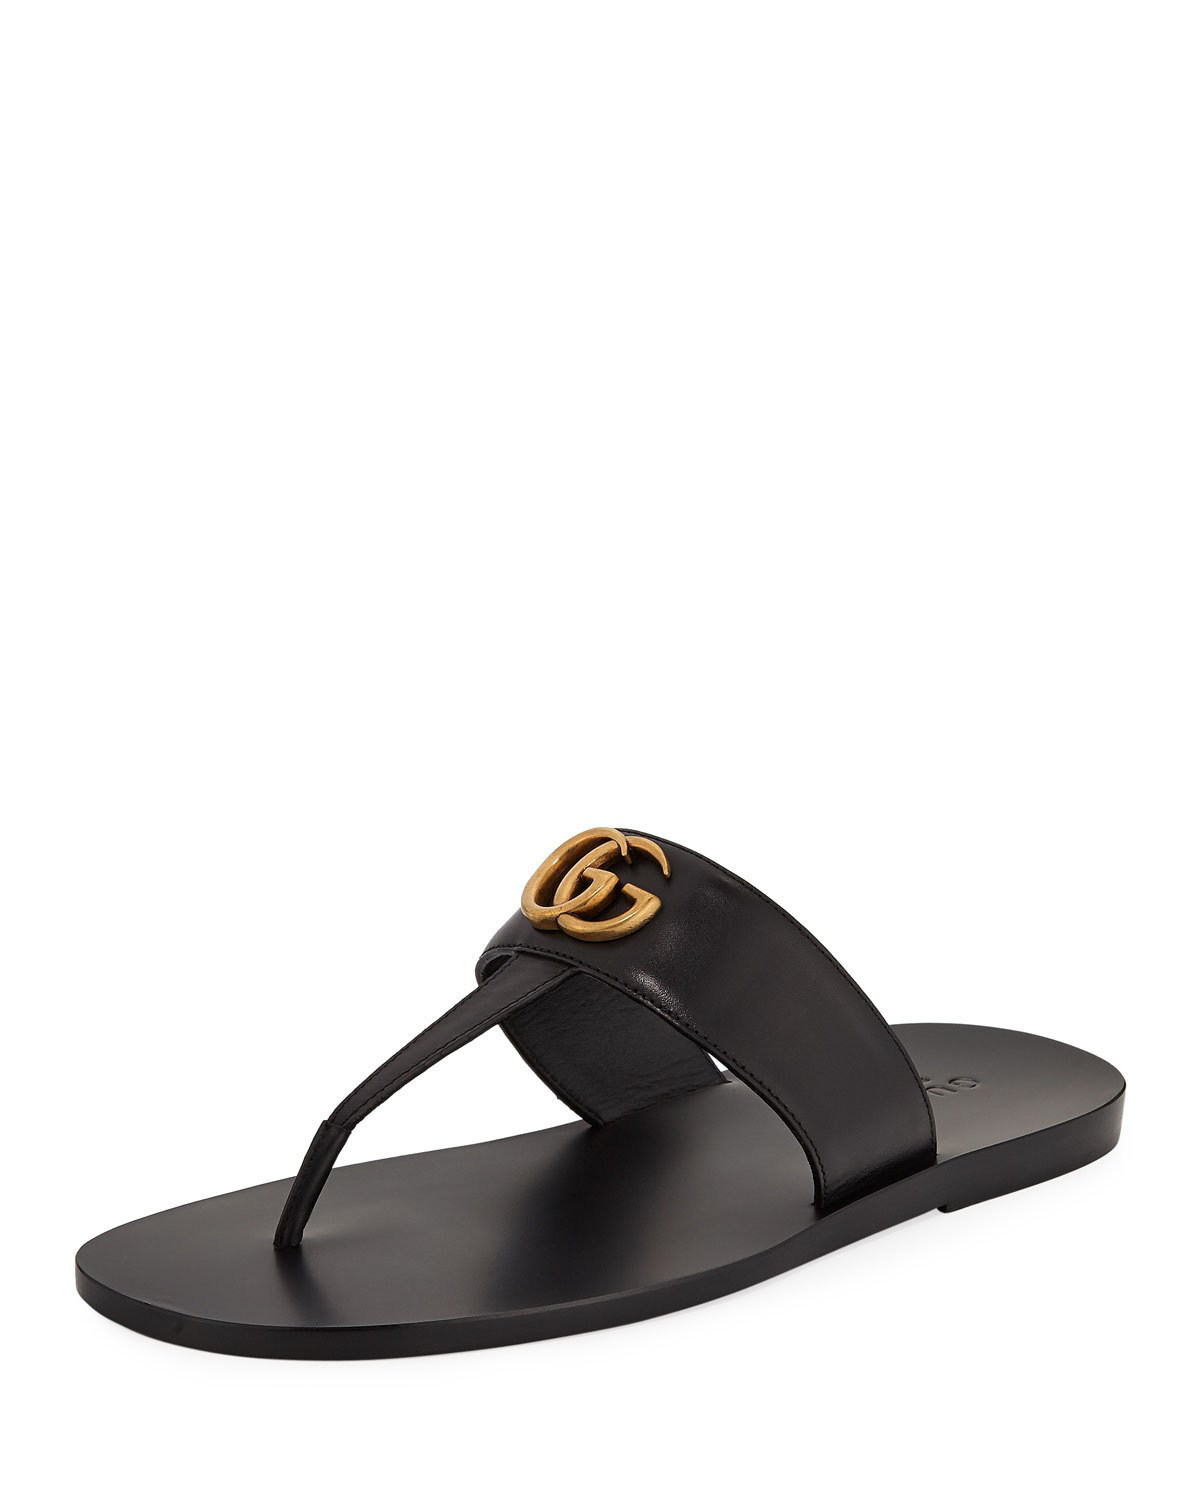 d09230414c3 Gucci Marmont Double G Leather Thong Sandal In Black